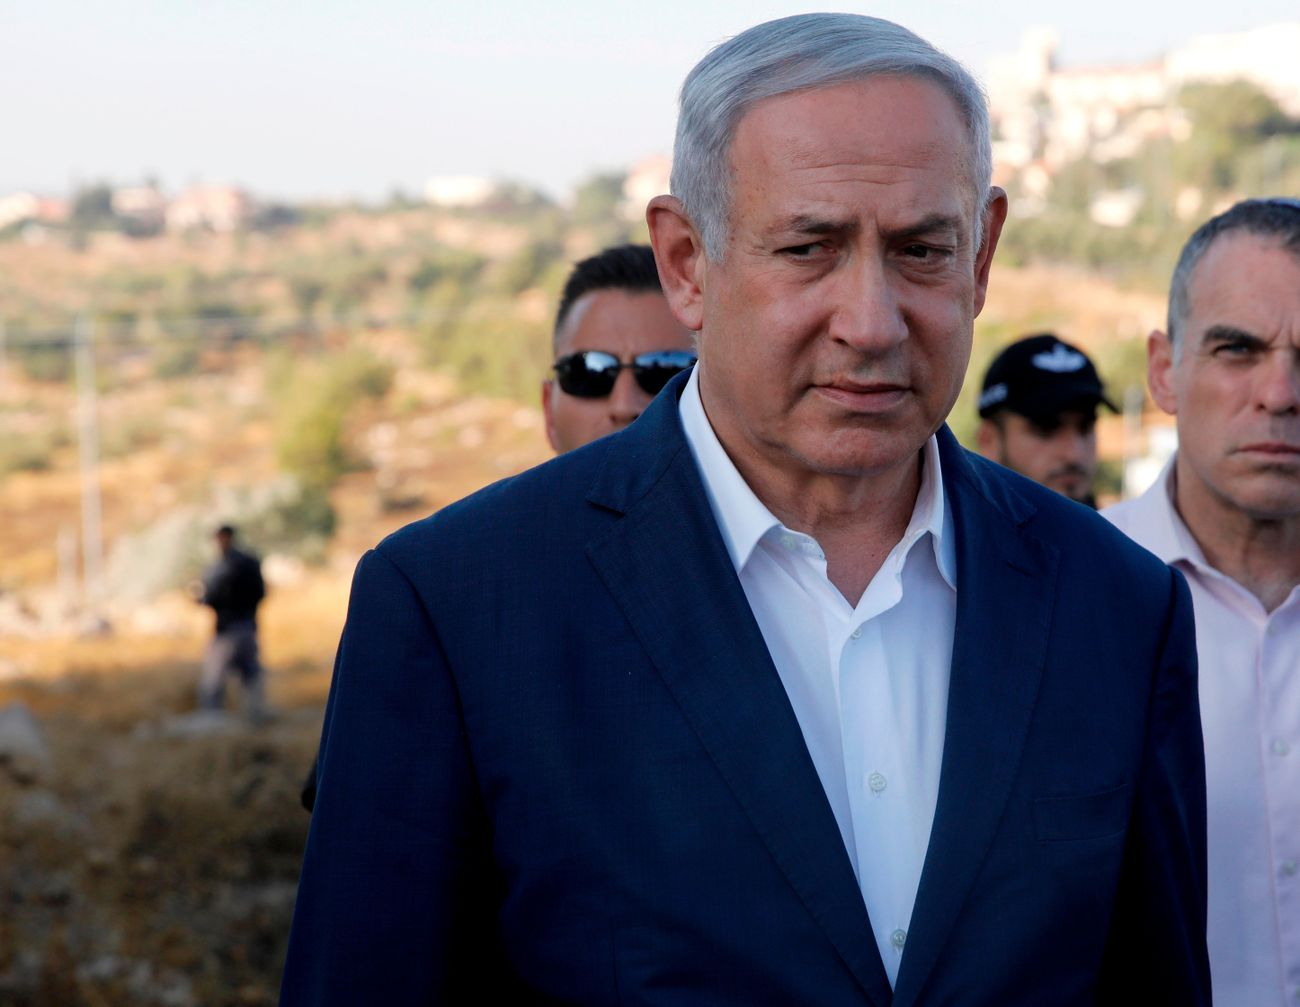 Netanyahu's Deafening Silence On Trump's 'Dual Loyalty' Is A Betrayal Of Israel's Founding Principles